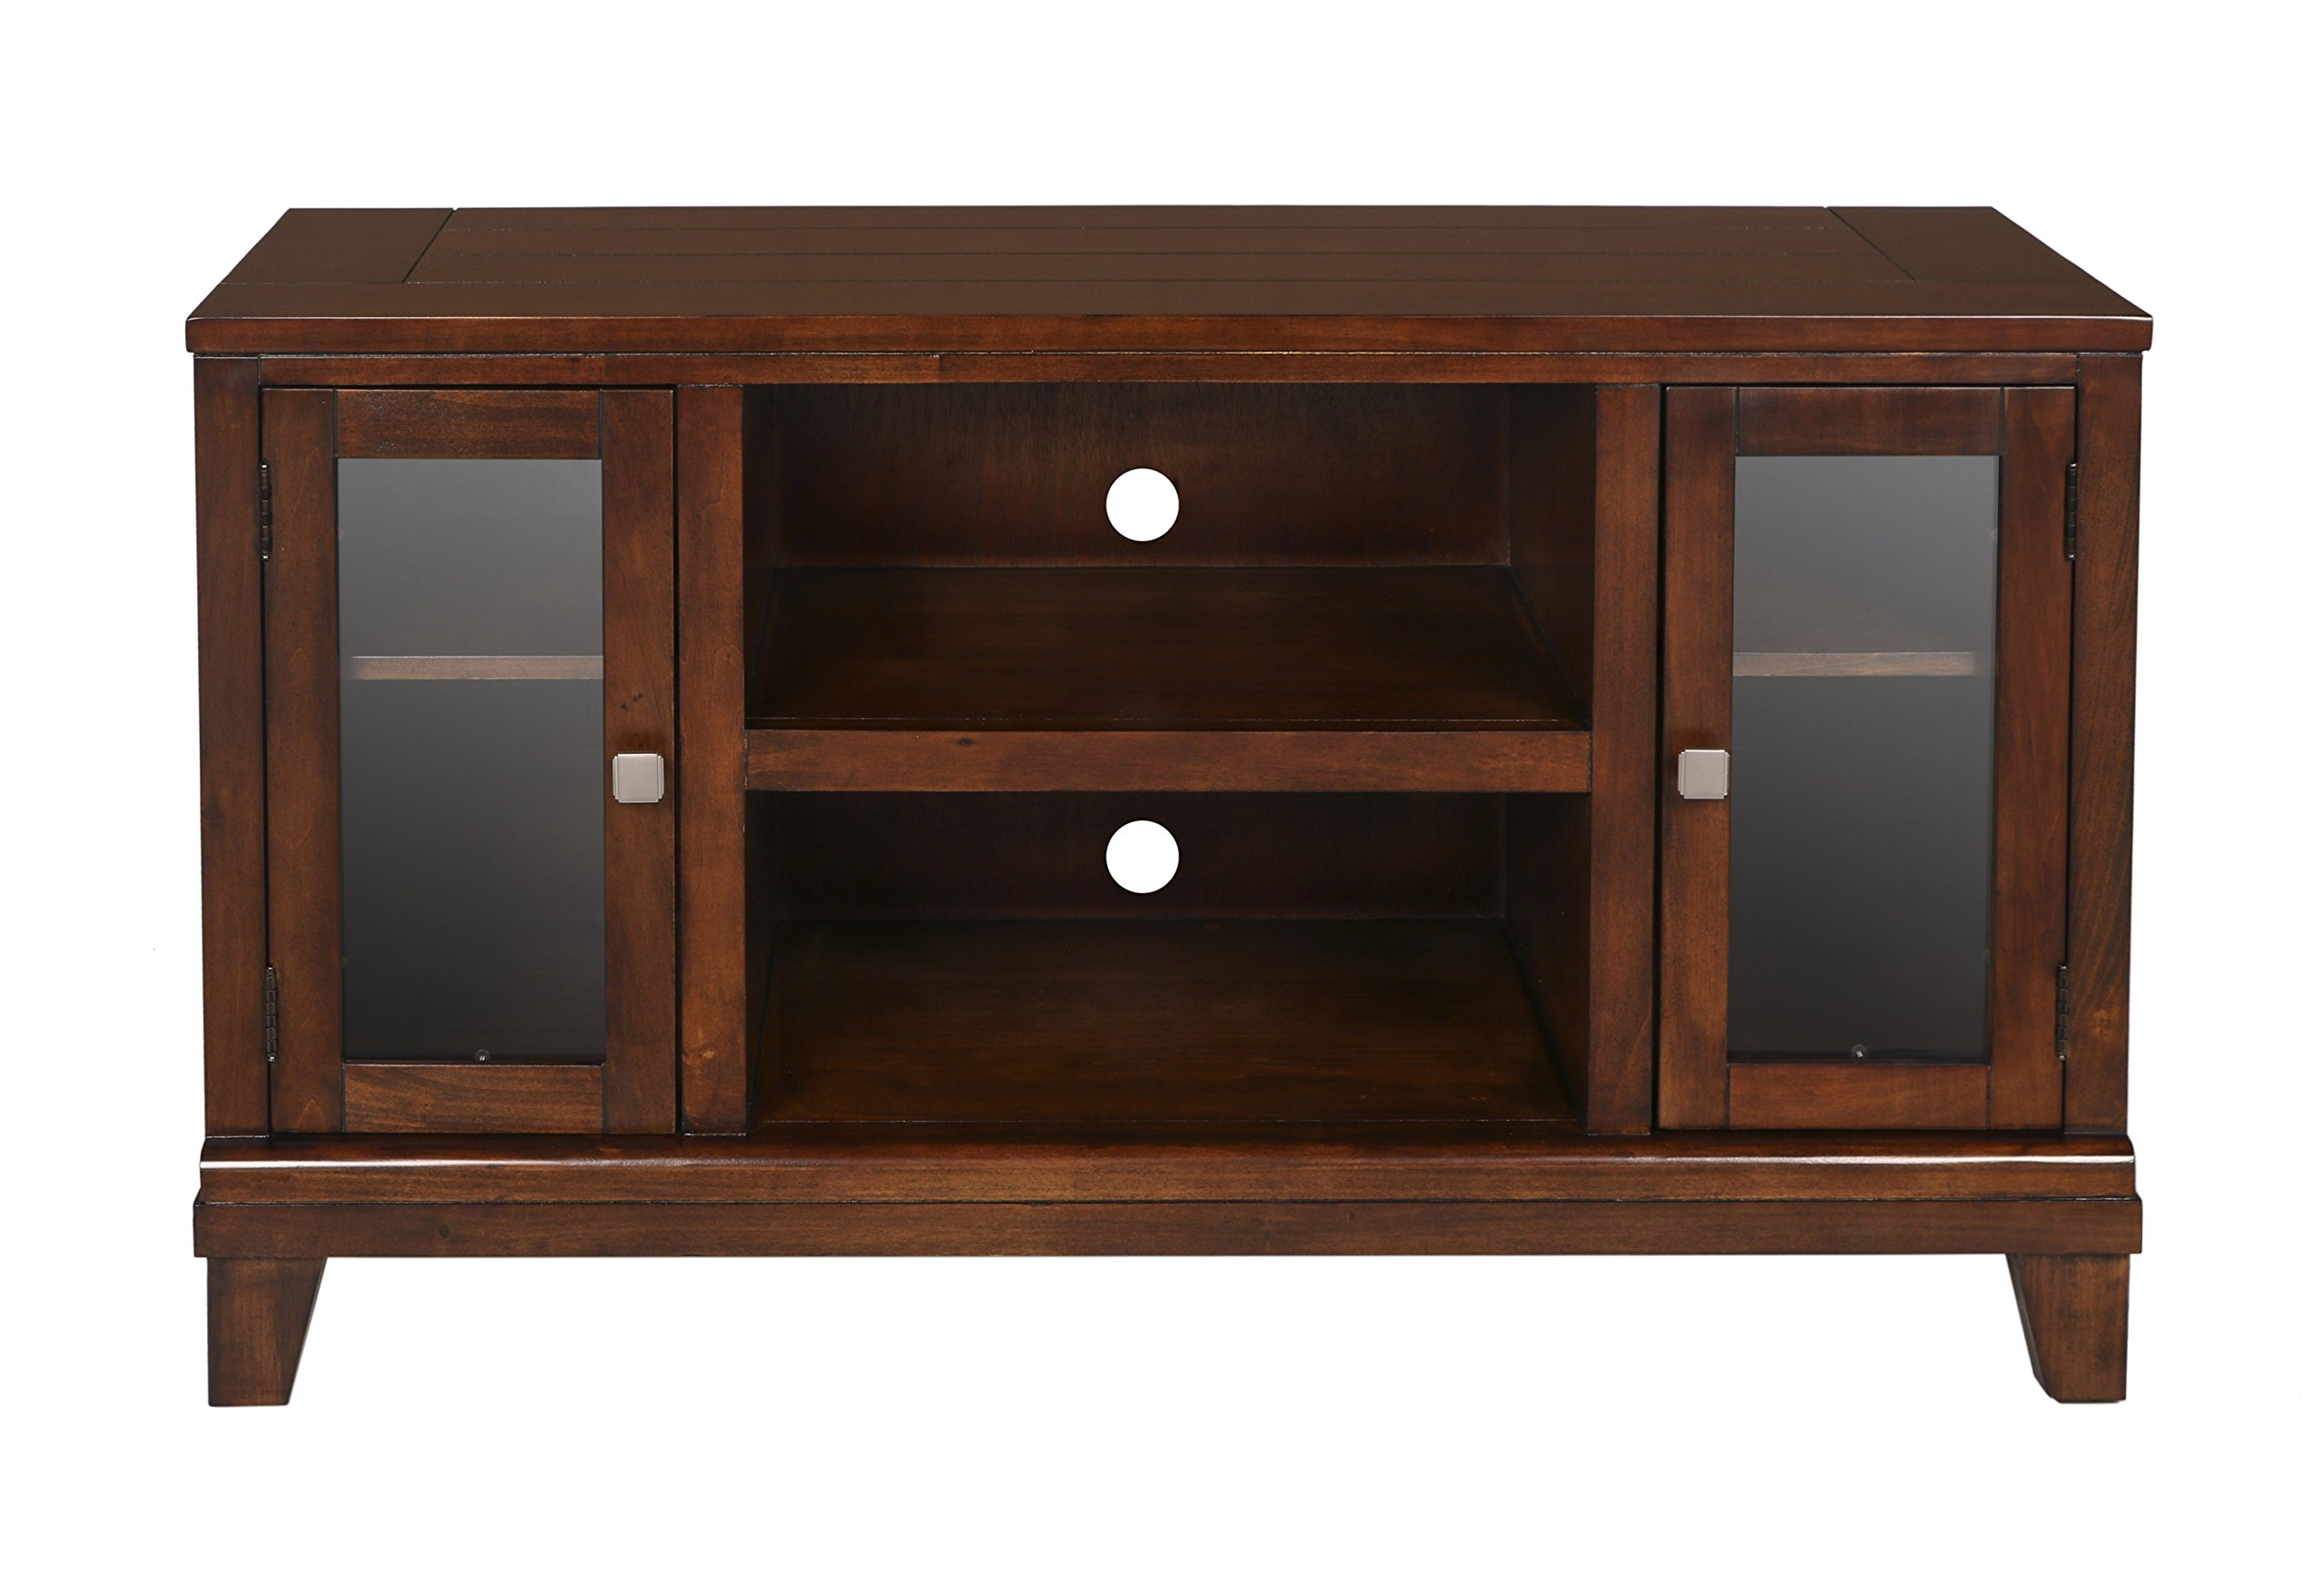 New Classic Sanibel Simple Sable Entertainment Console by New Classic Furniture